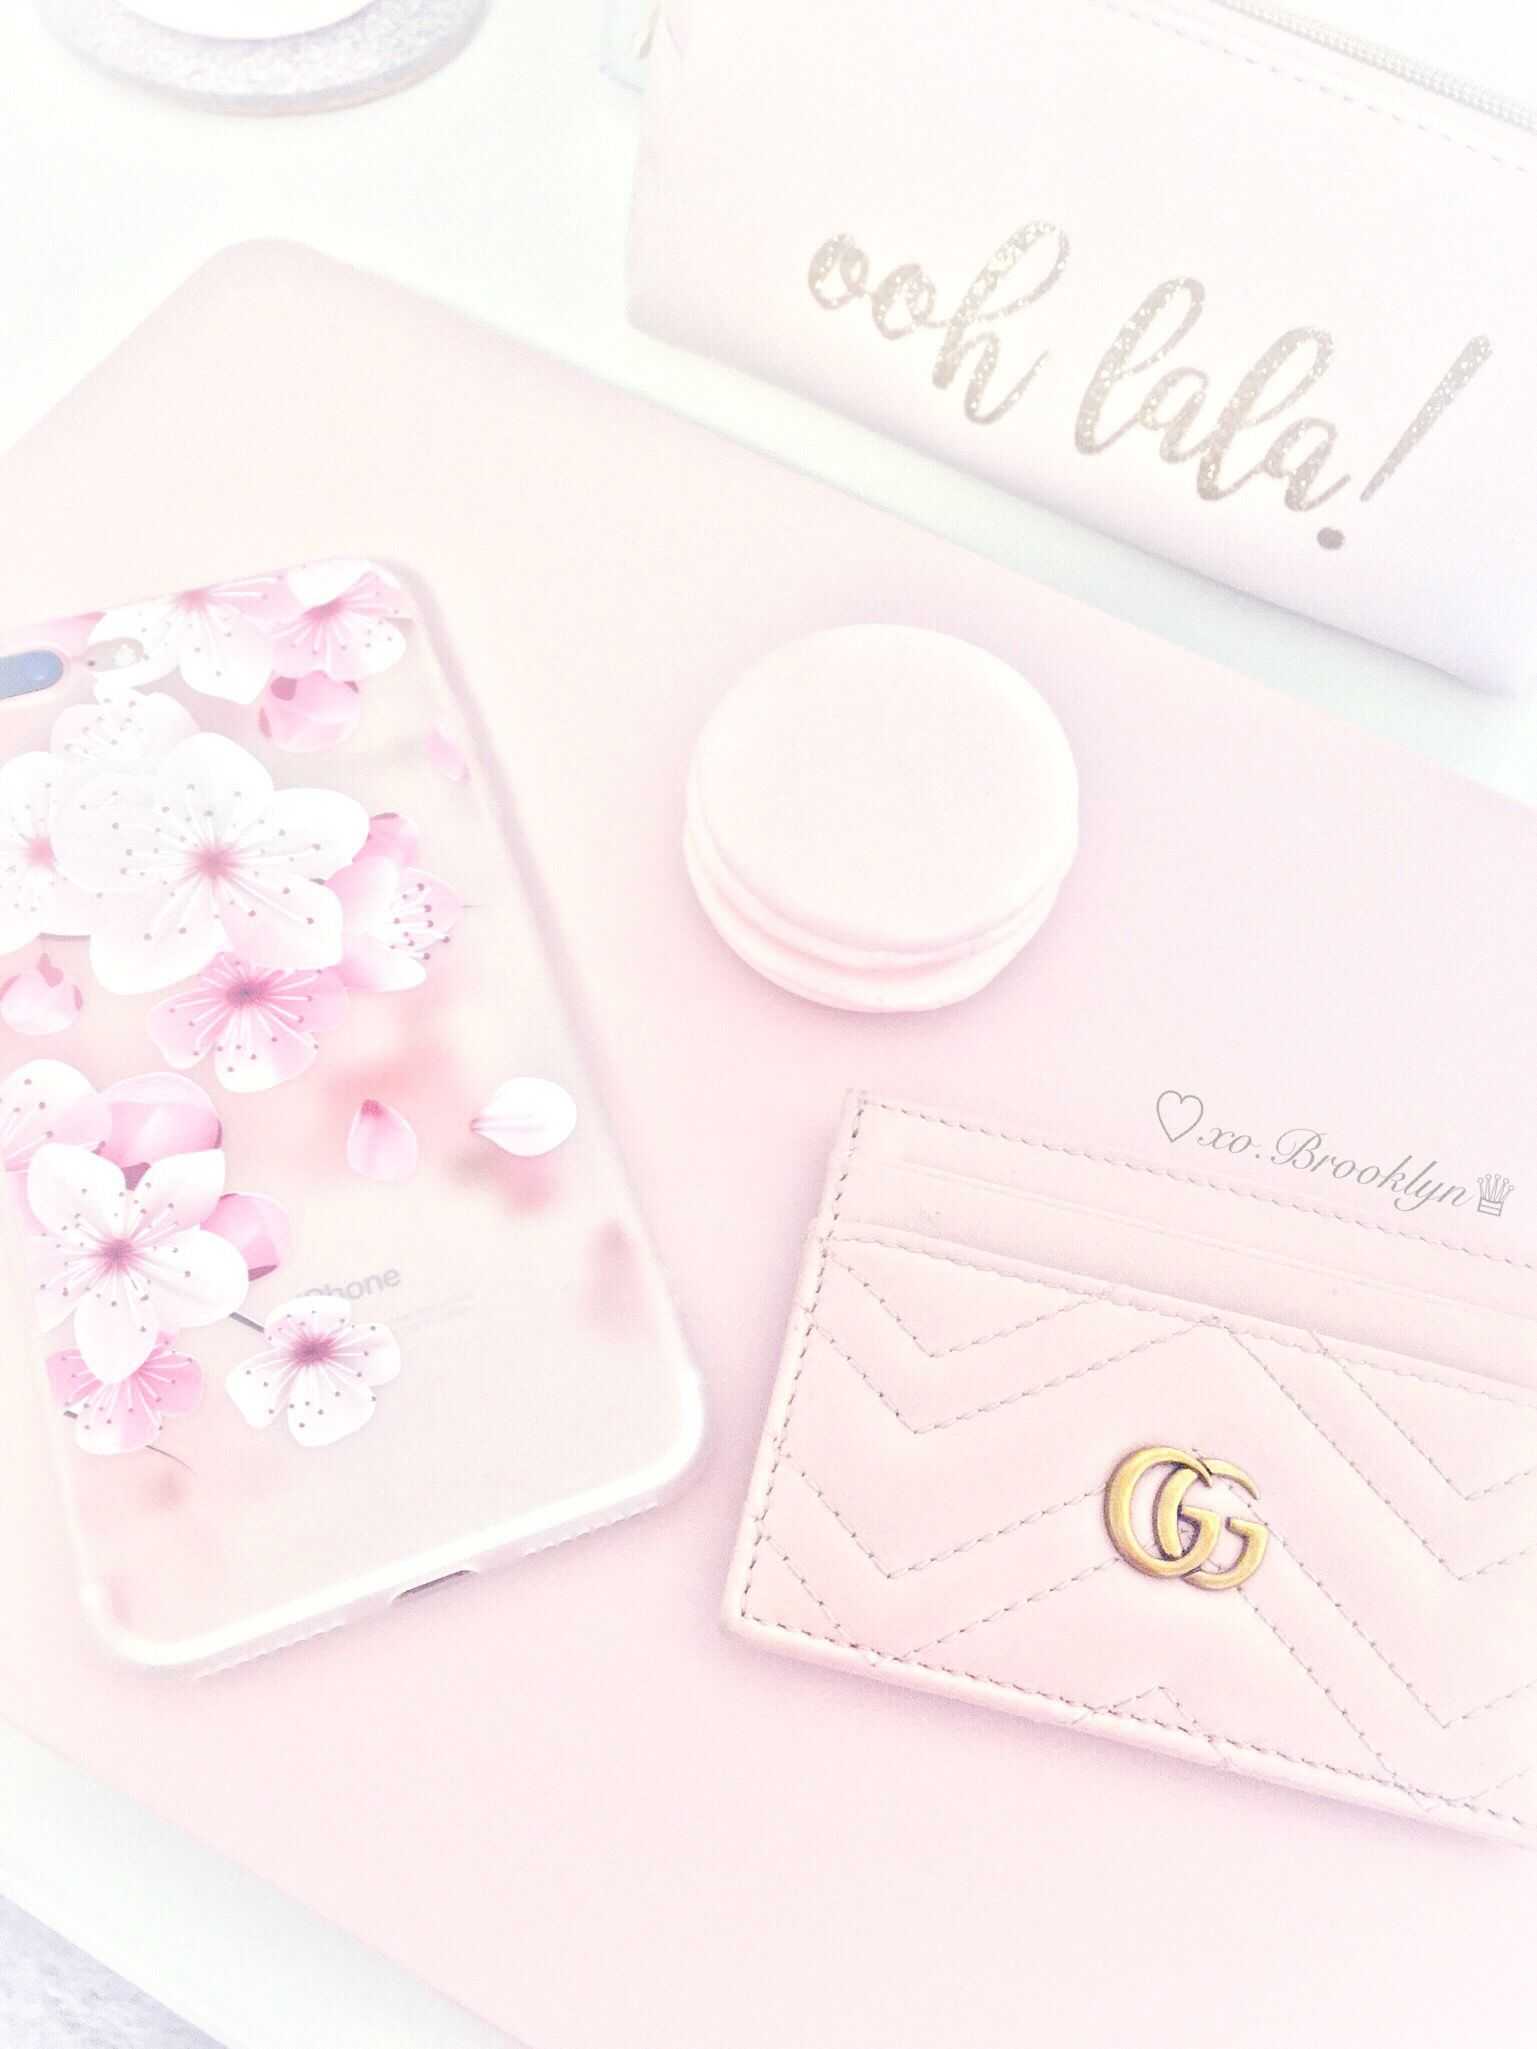 Pin By Alexandra Garza On Girly Girl Pink Aesthetic Pretty In